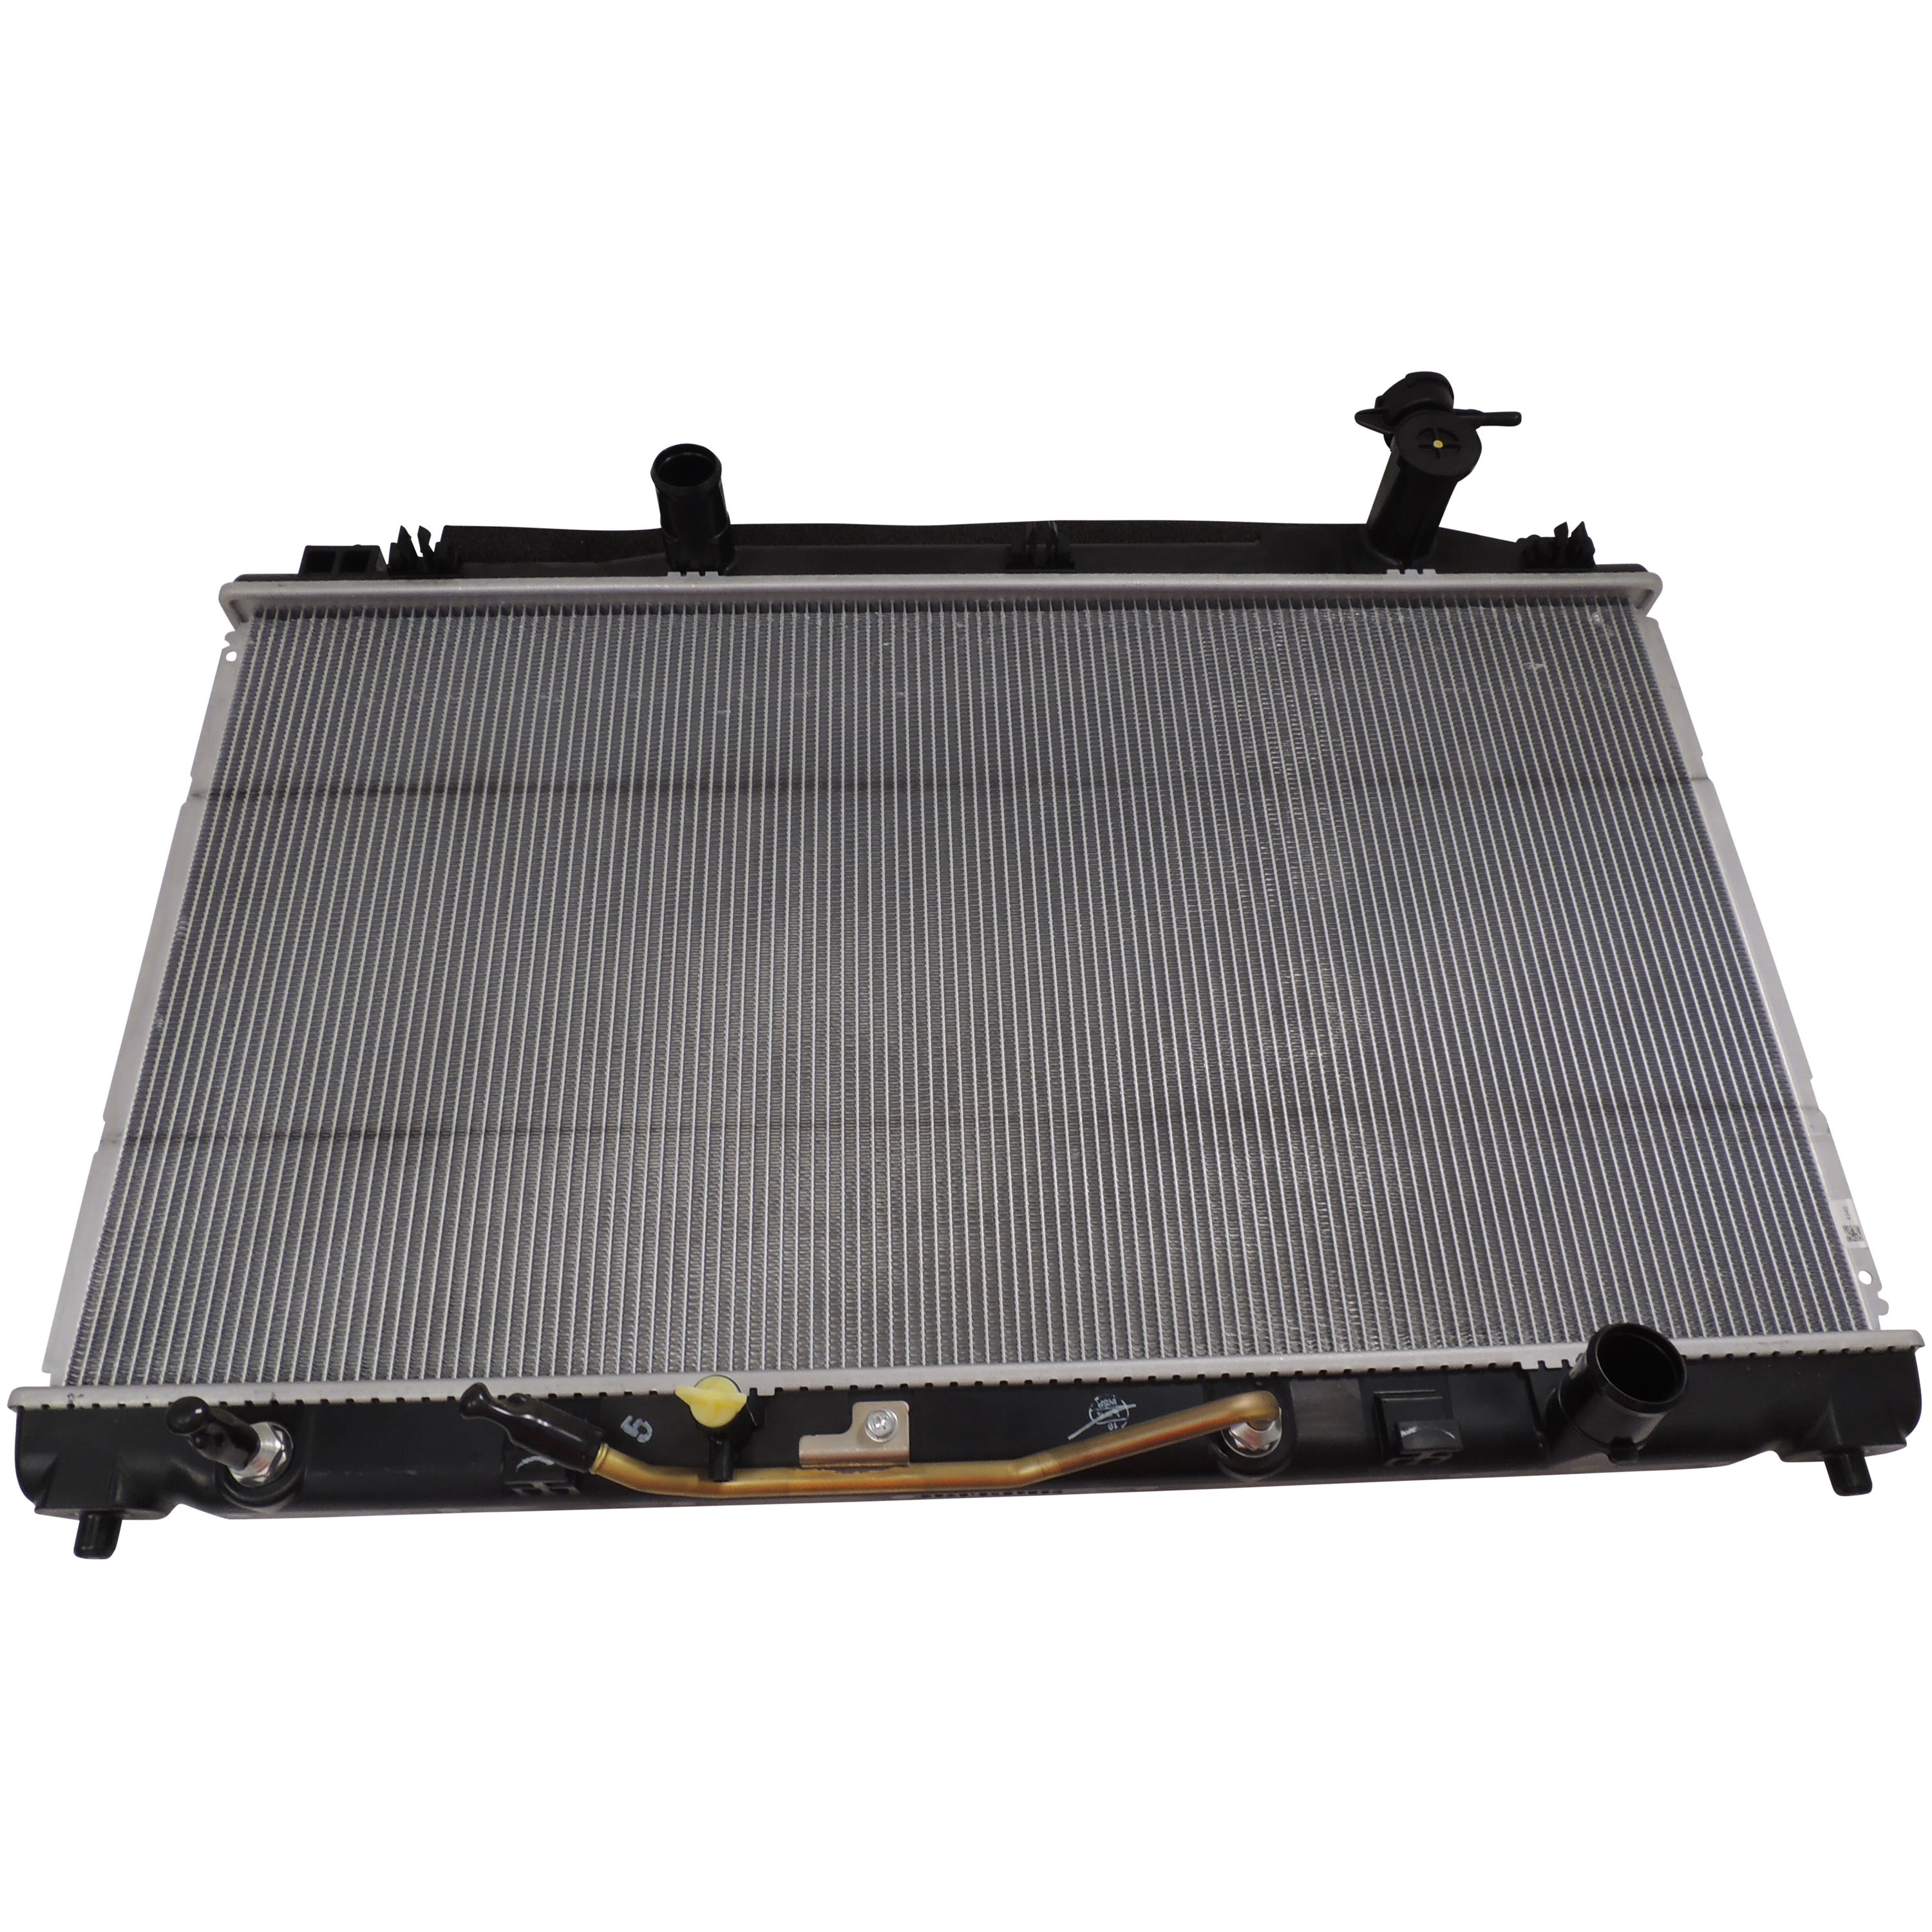 2917 Radiator Fit For 2007-2011 Toyota Camry 2008 2009 2010 2.4L//2.5L L4 Only